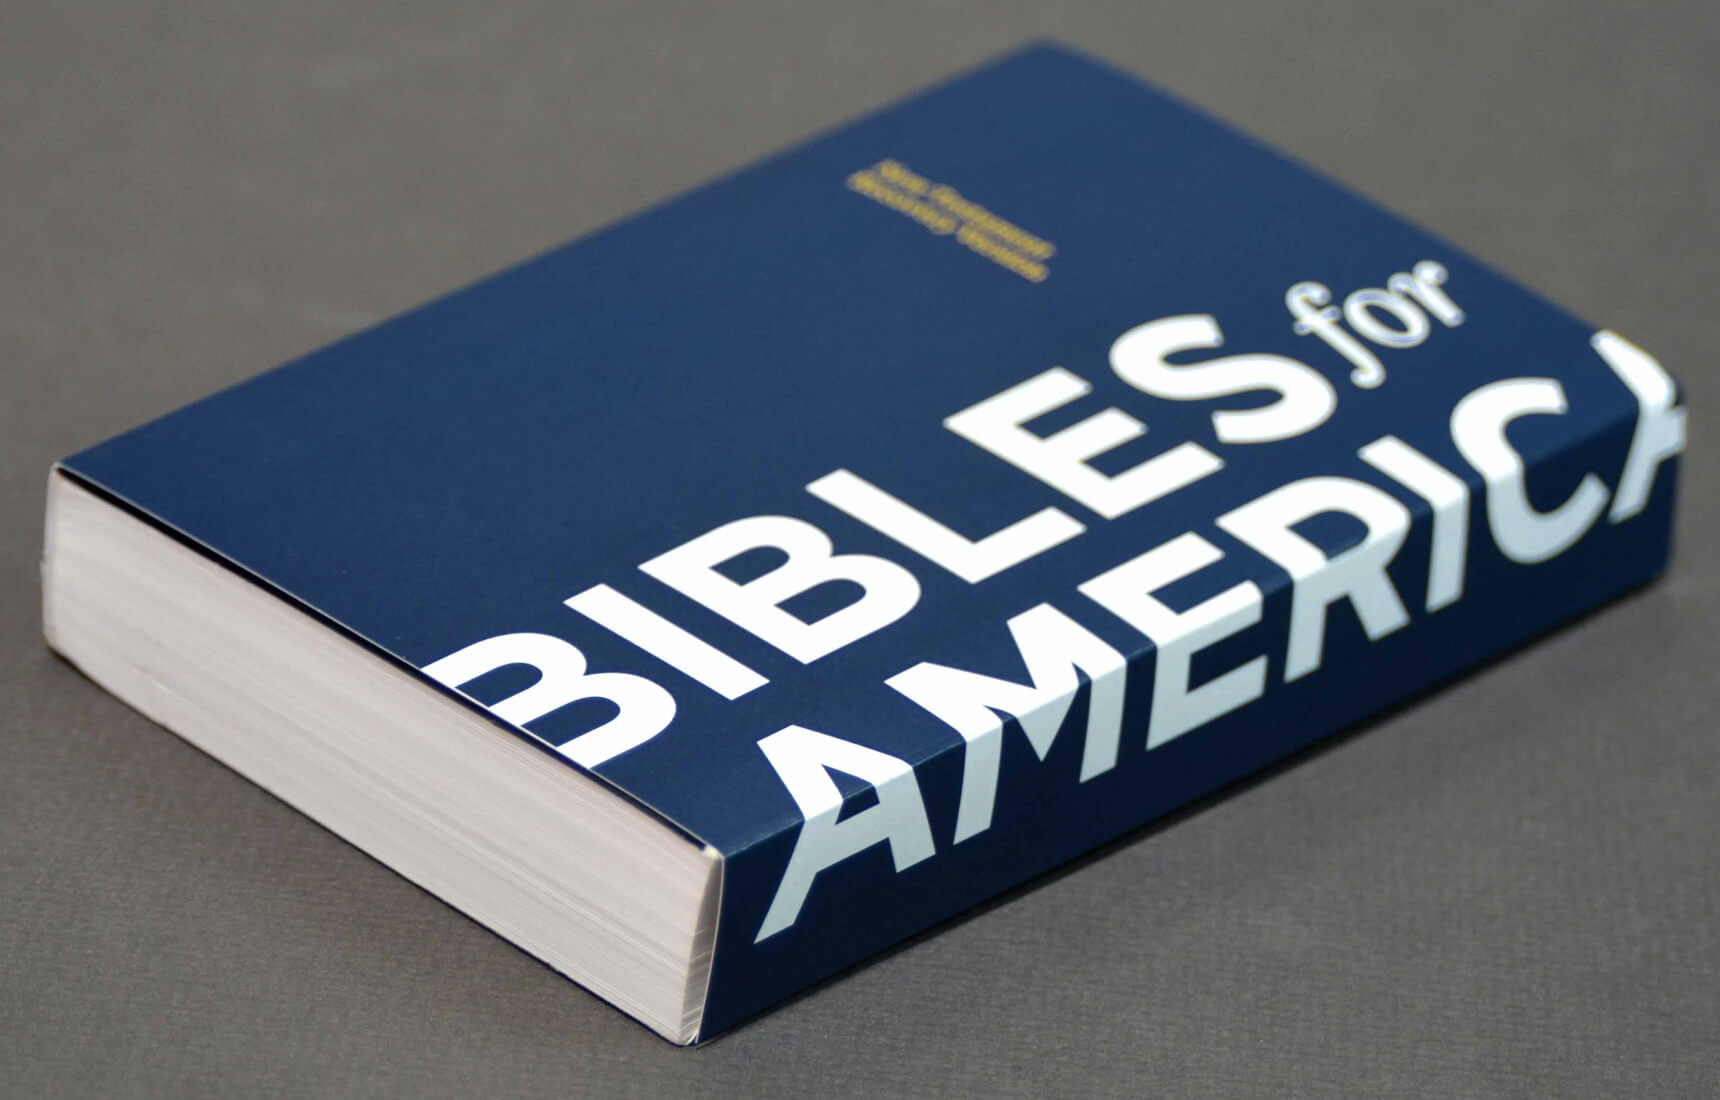 Product packaging for New Testament Bible.